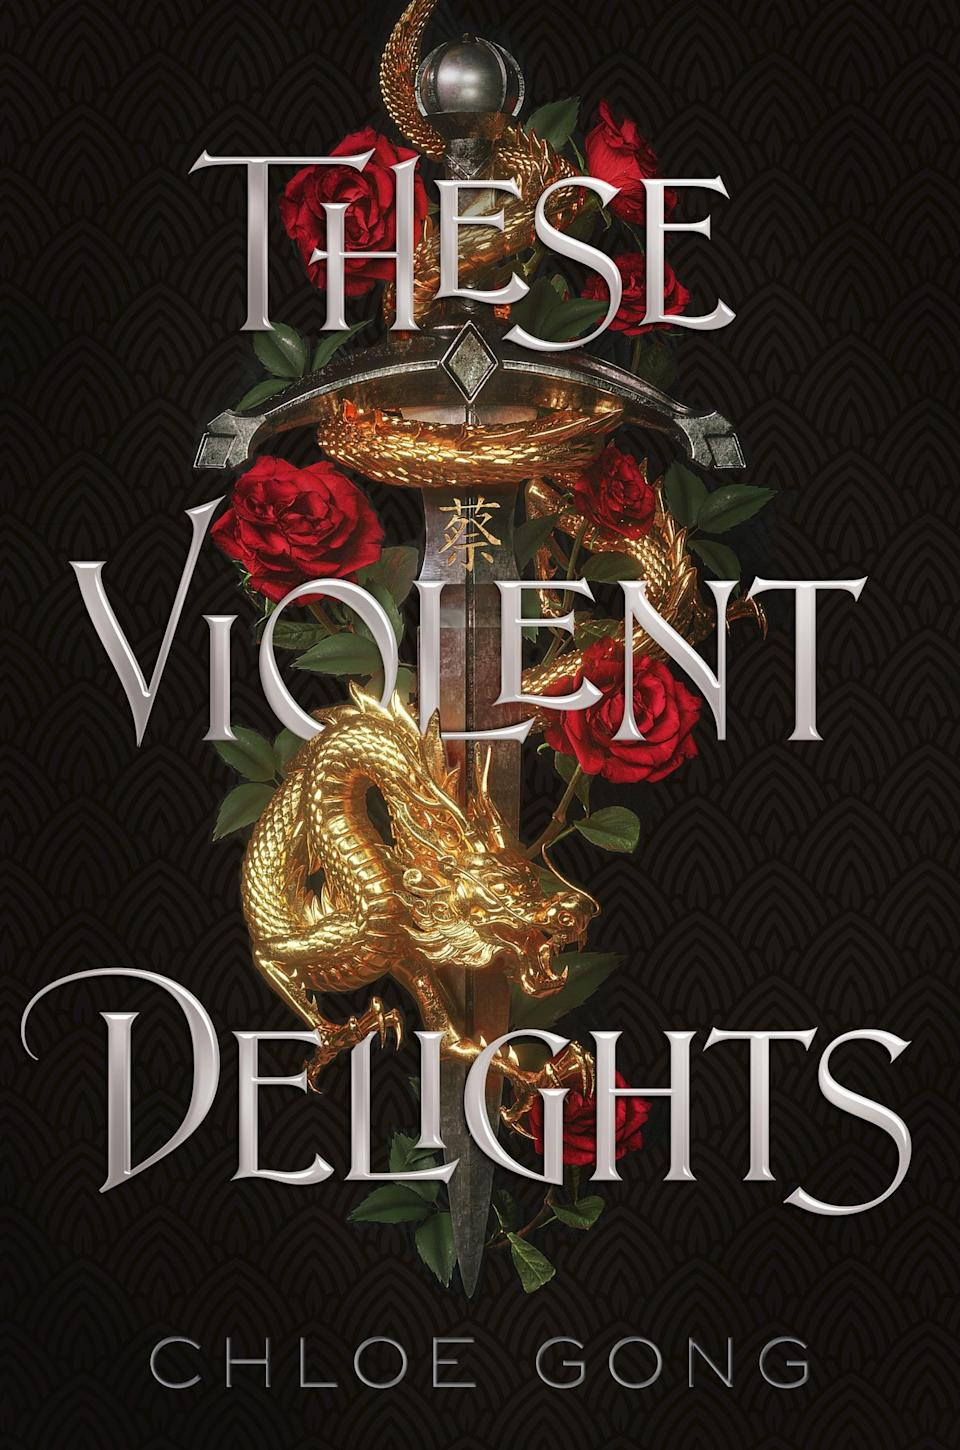 <p>Stylish and engrossing, <span><strong>These Violent Delights</strong></span> by Chloe Gong transports readers to 1920s Shanghai for a supernatural-tinged retelling of <strong>Romeo and Juliet</strong>. Former flapper Juliette Cai returns home to assume her role as the rightful leader of the Scarlet Gang only to find herself on a bloody collision course with Roma Montagov, her first love and the leader of rival gang the White Flowers. </p> <p><em>Out Nov. 17</em></p>